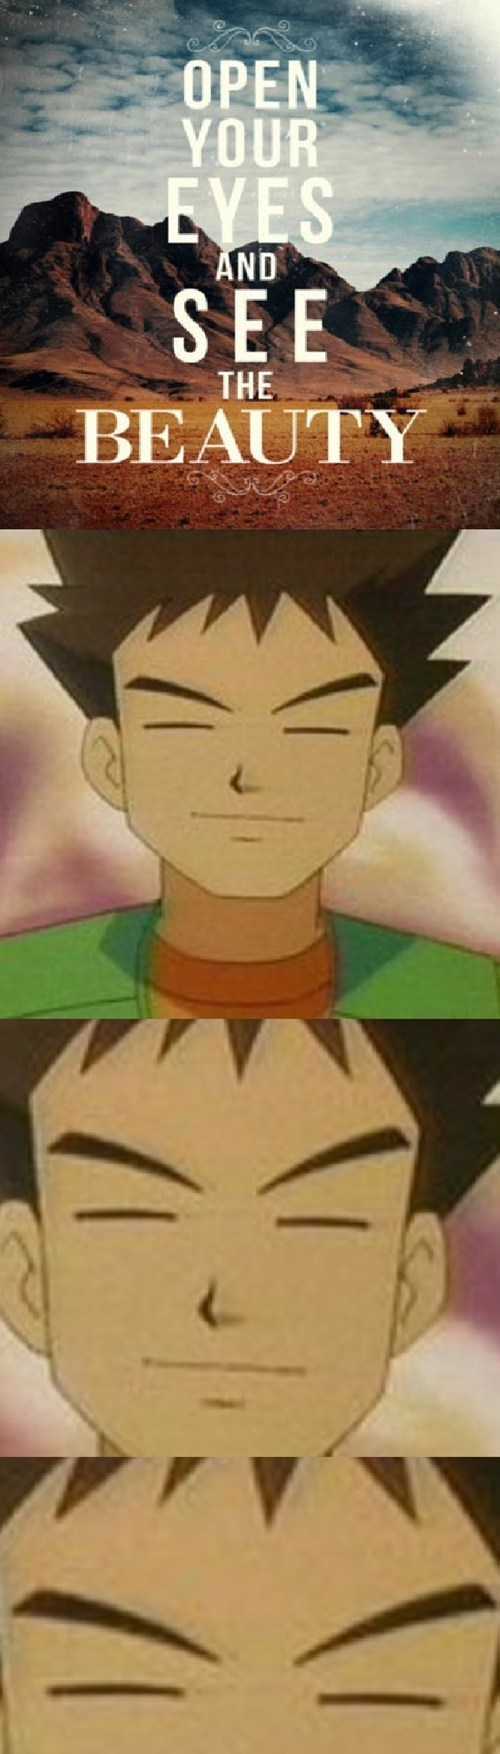 brock,Pokémon,eyes